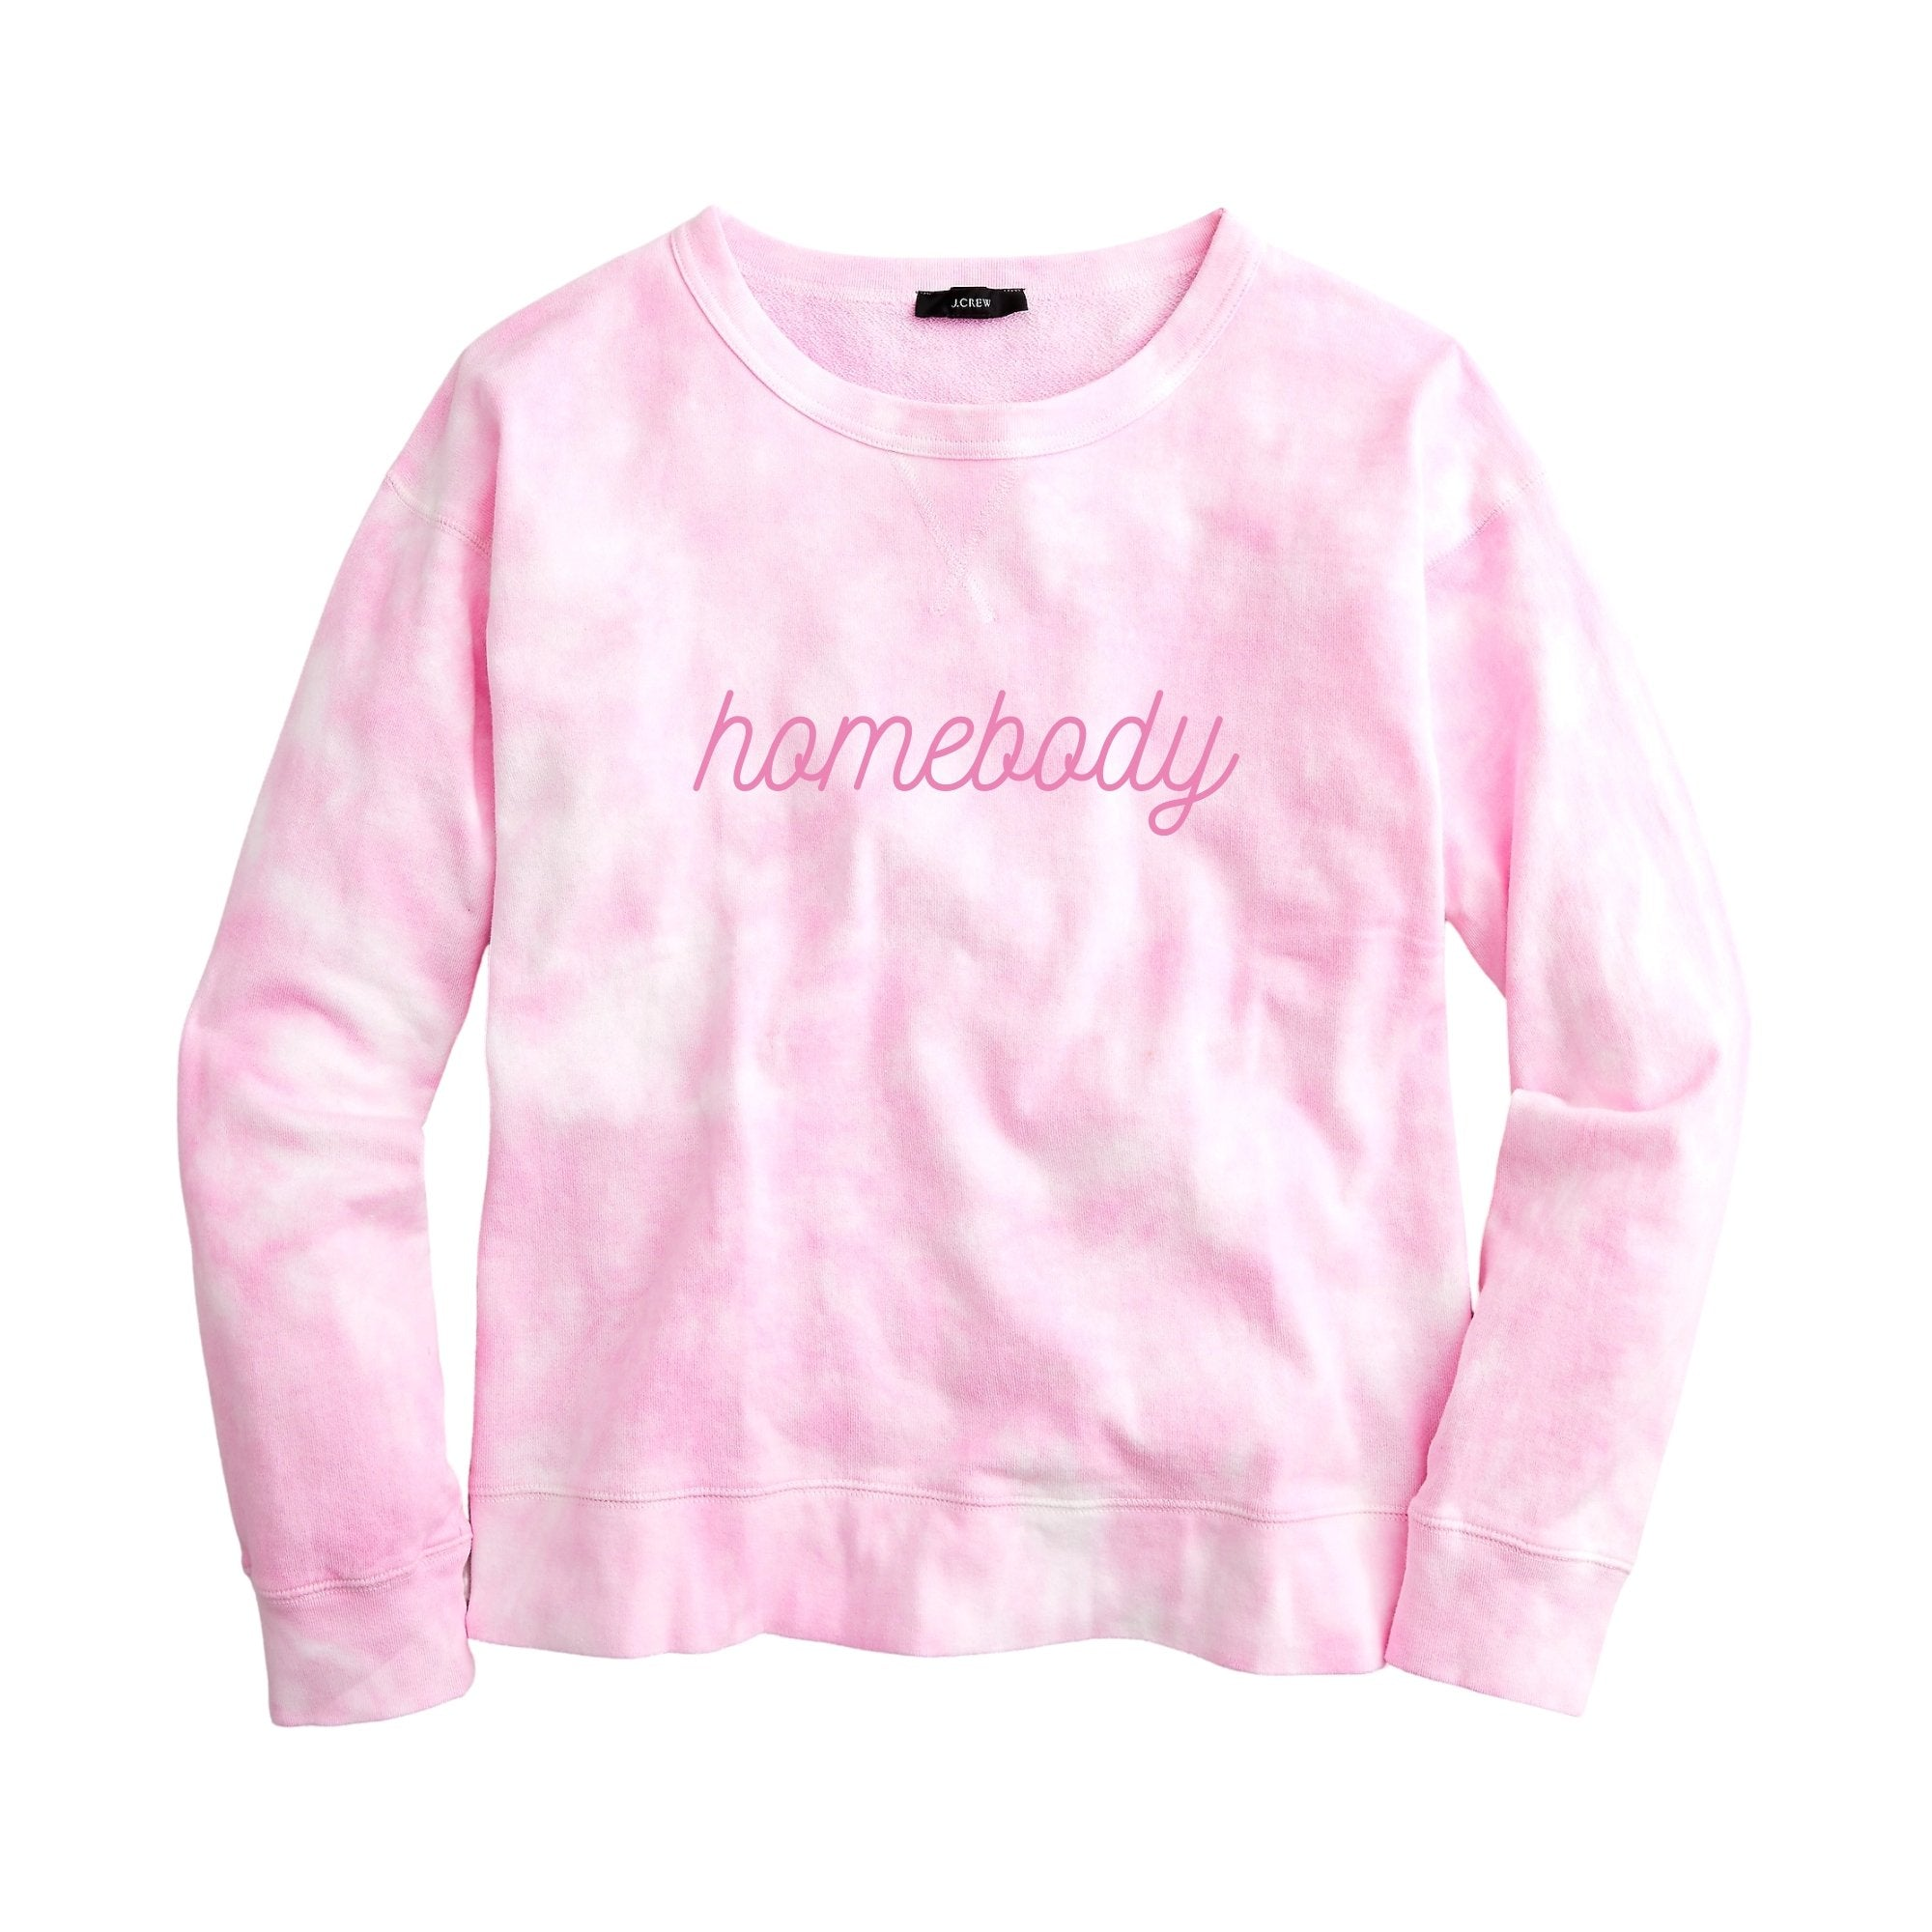 Homebody Sweatshirt - Pink Tie Dye